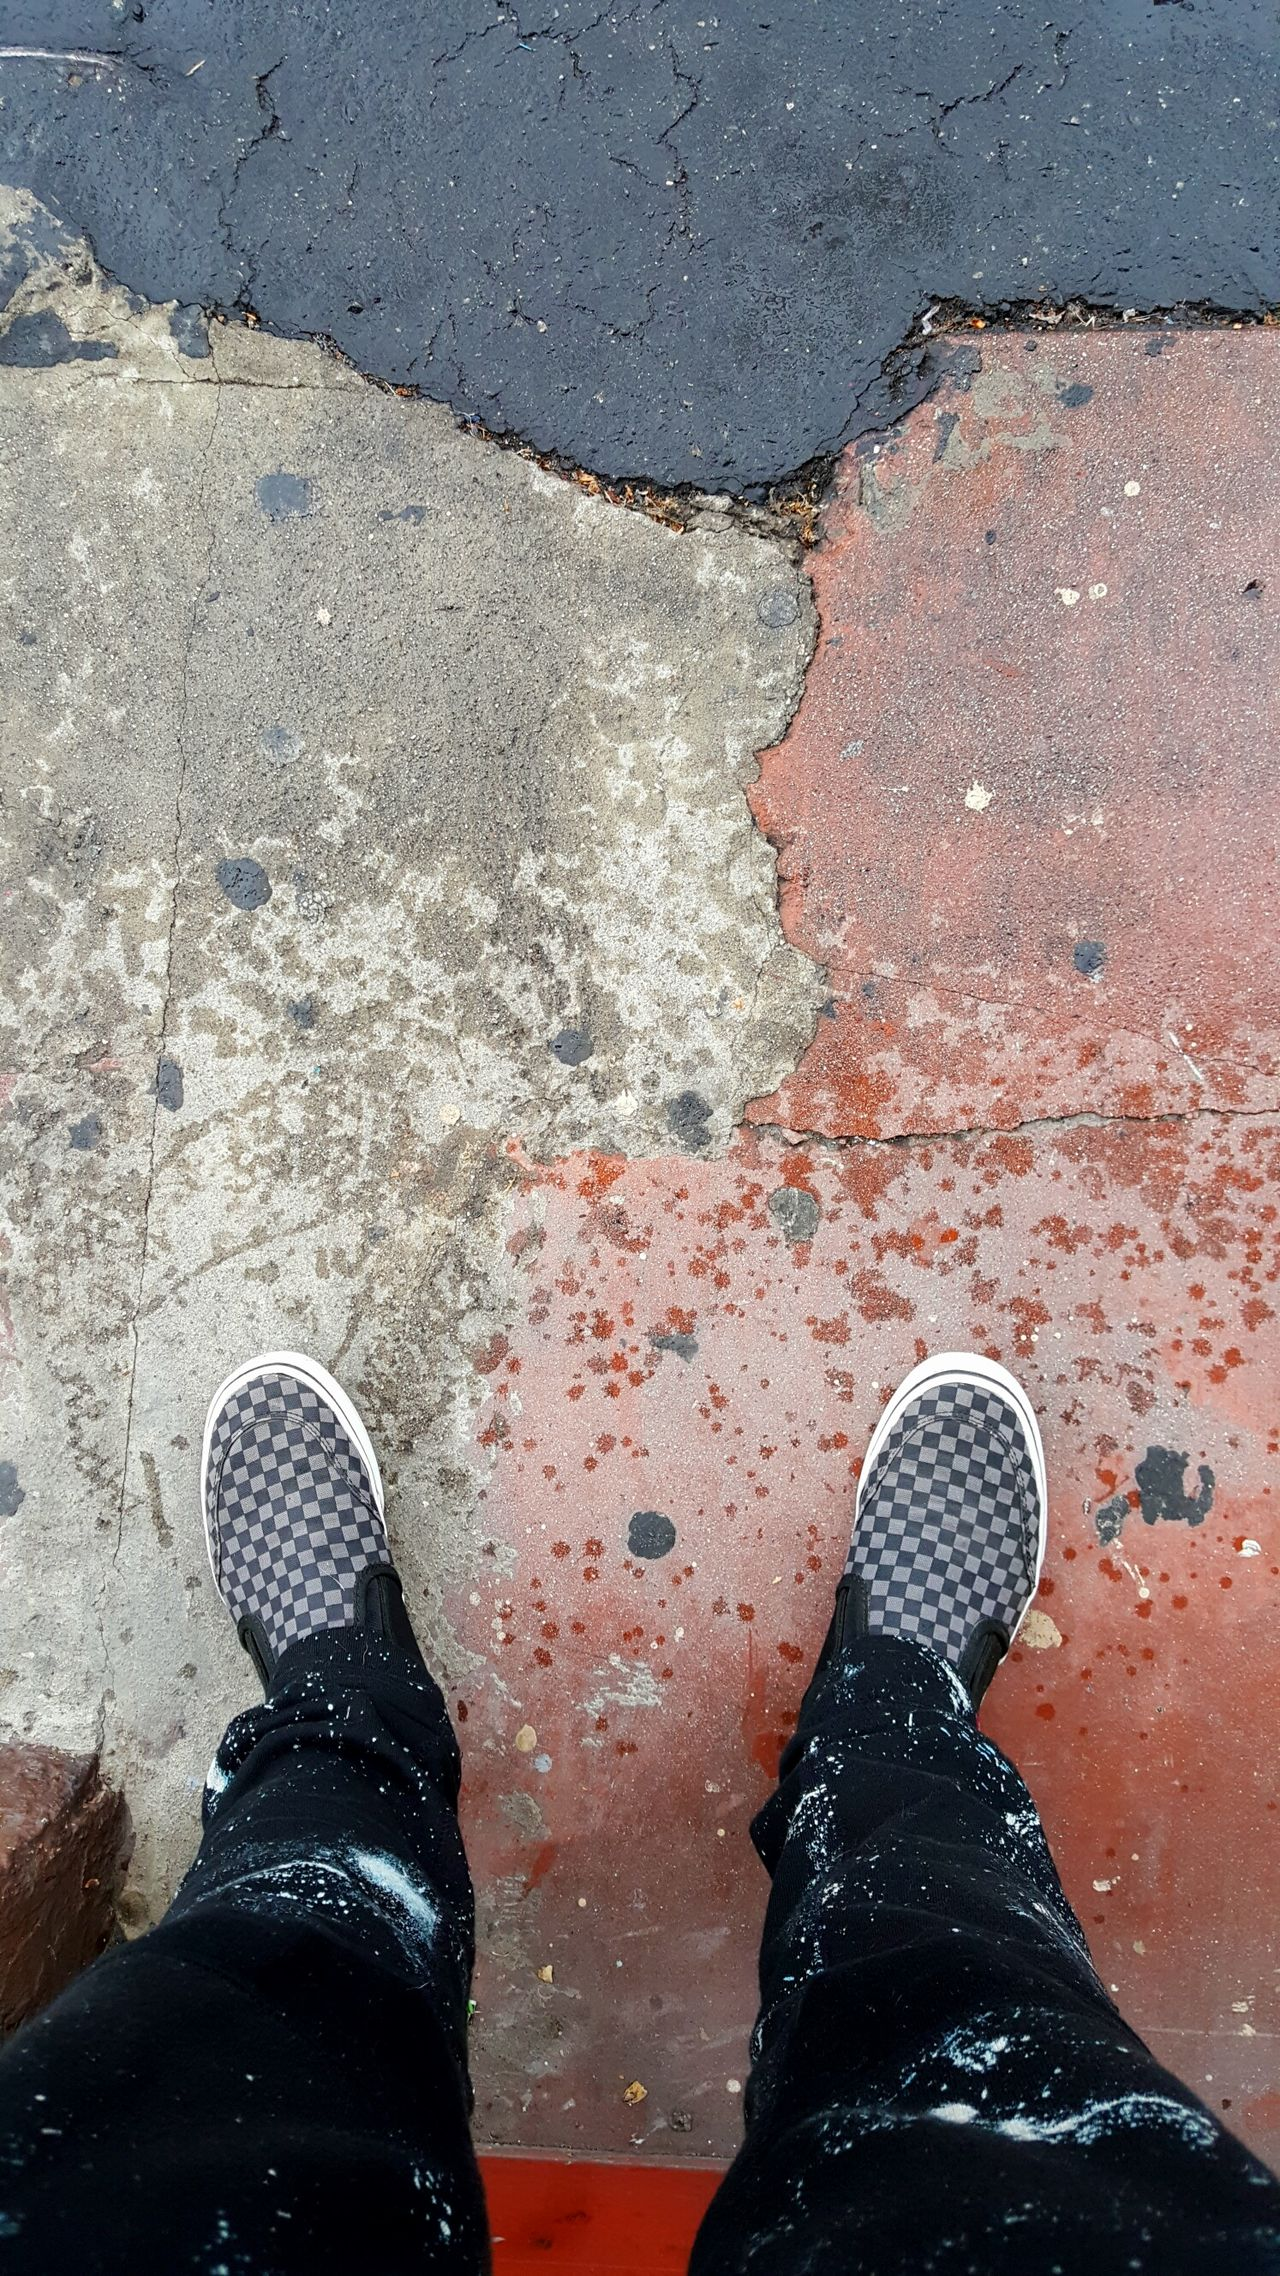 Low Section Real People Human Leg Cracked Concrete Contrast Natural Lightning Soft Lighting No Filter Offthewall High Angle View Splatters Standing Shoe Lifestyles Outdoors Day Checkered Pattern Human Body Part Road Close-up Full Frame Urban Landscape Joggerpants Lifeontheroad Flying High